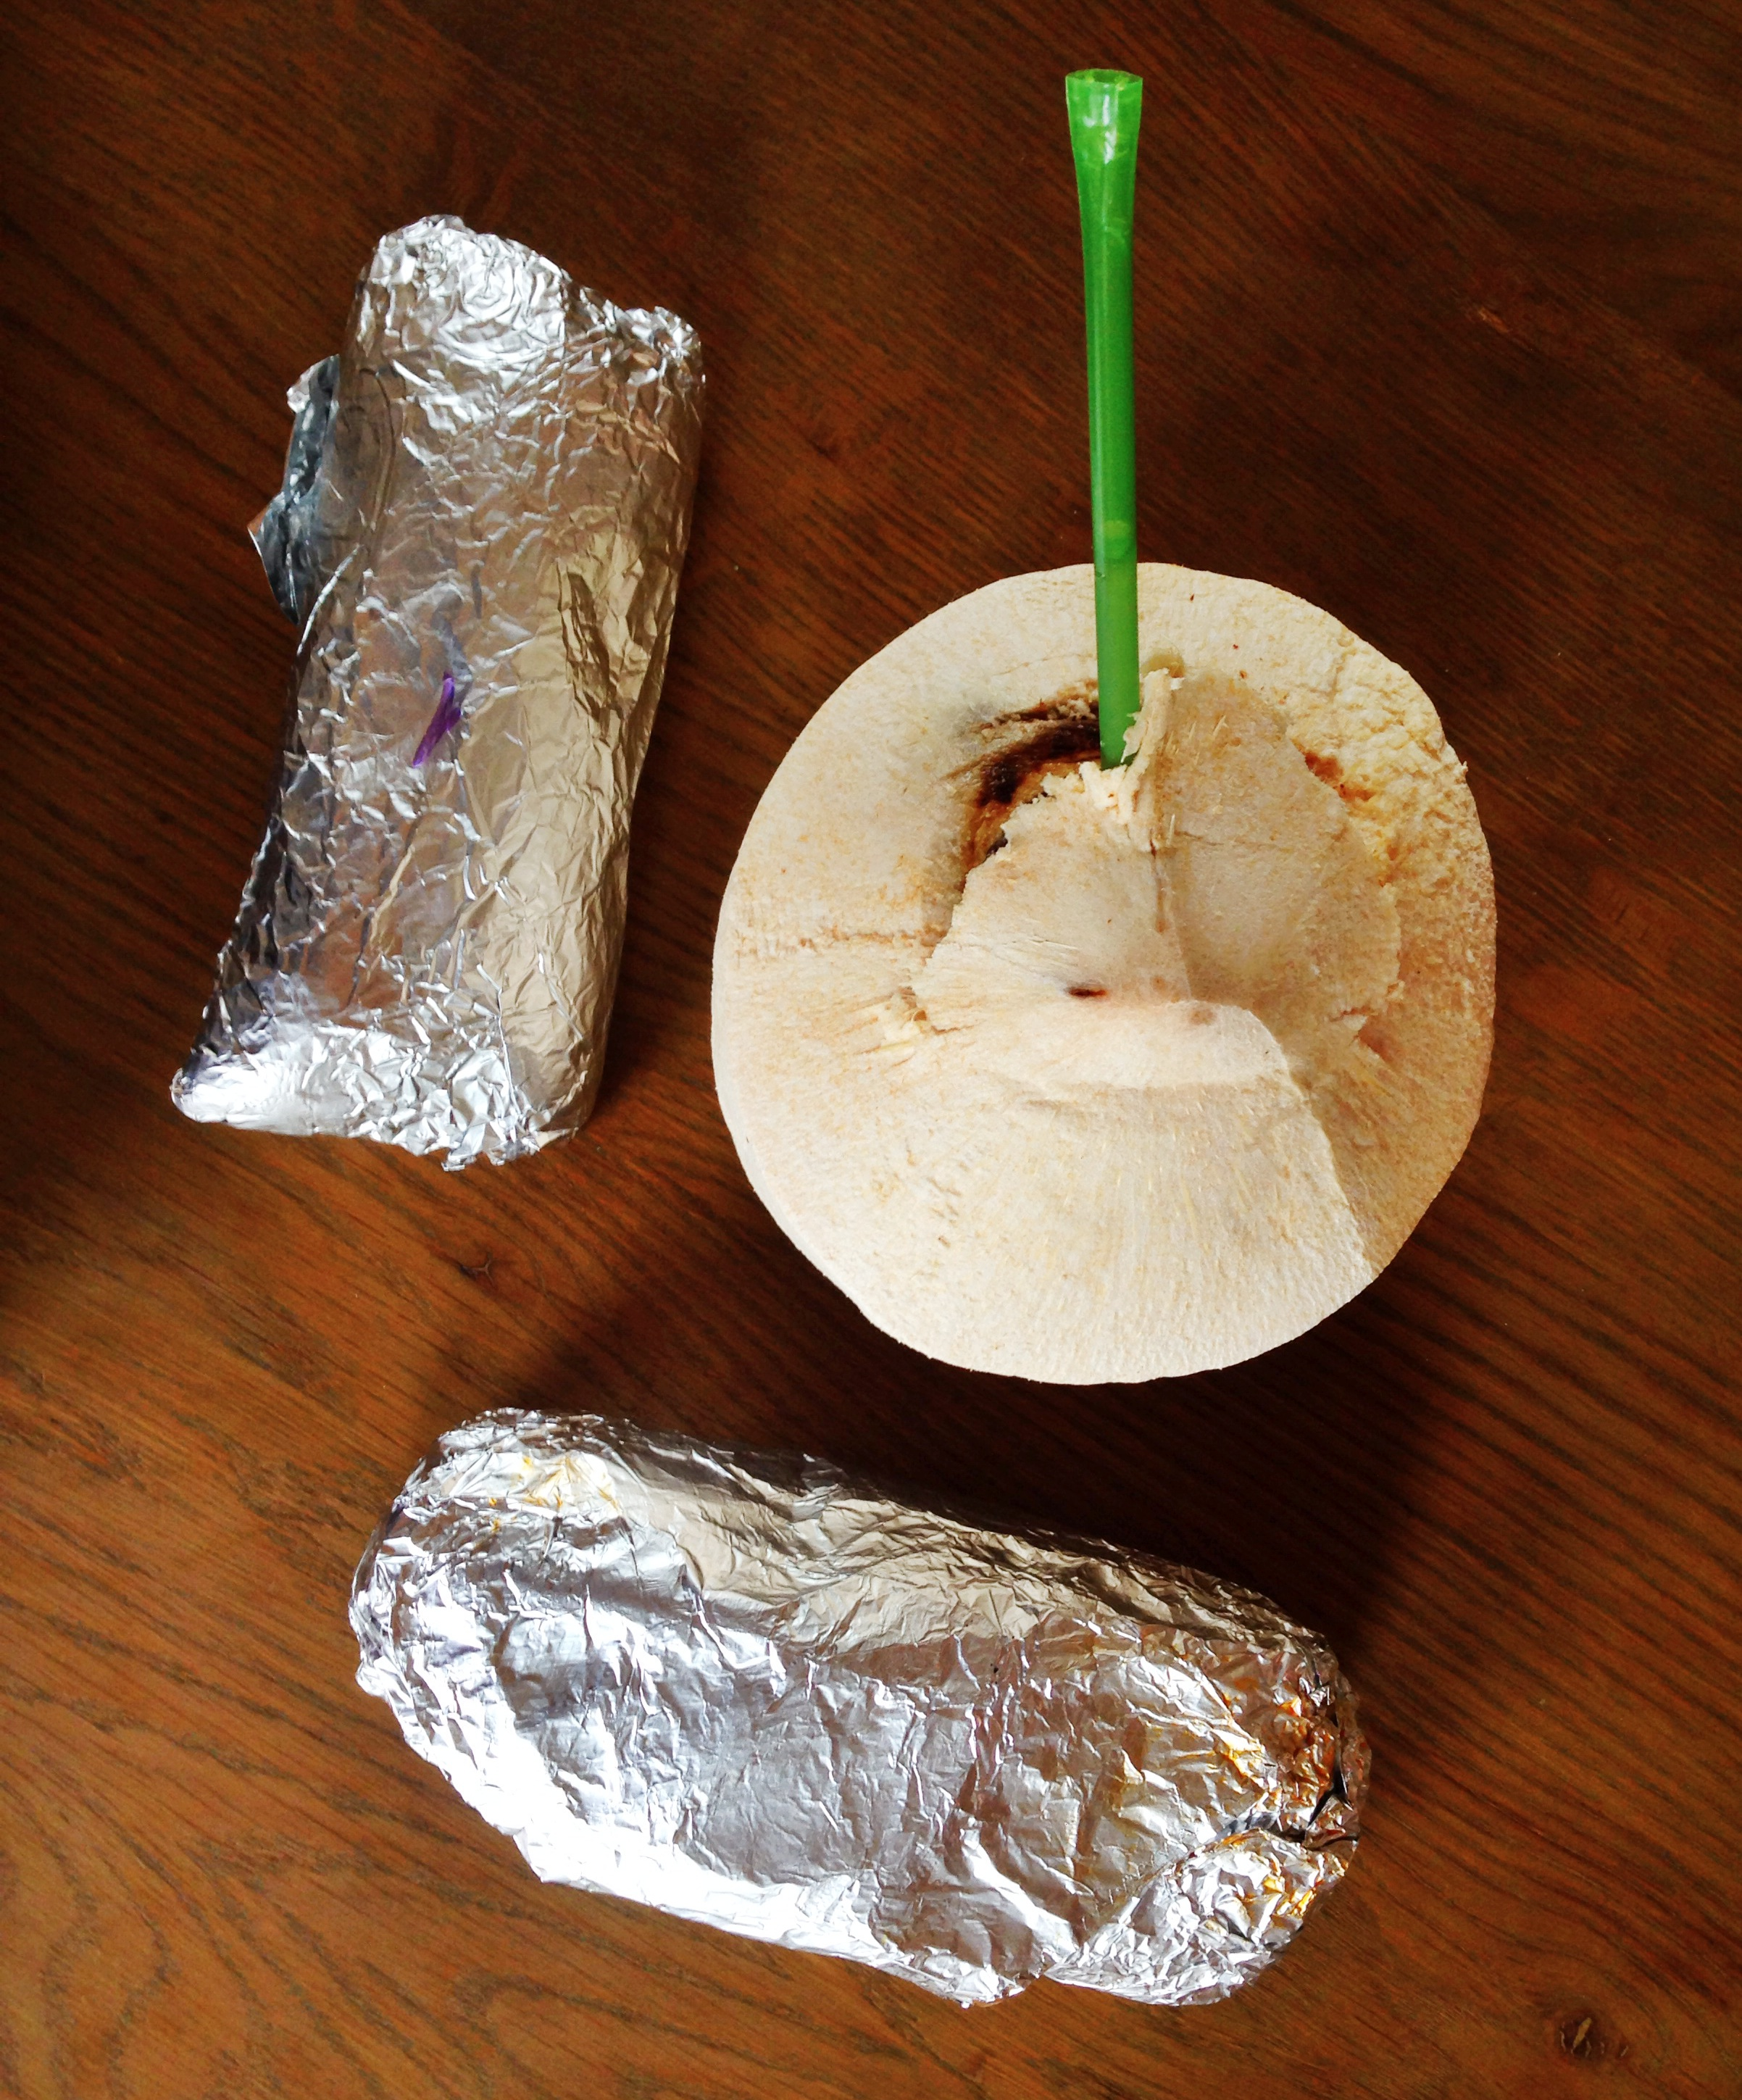 {Burritos and a coconut from my favorite spot,  The Green , in Nantucket}